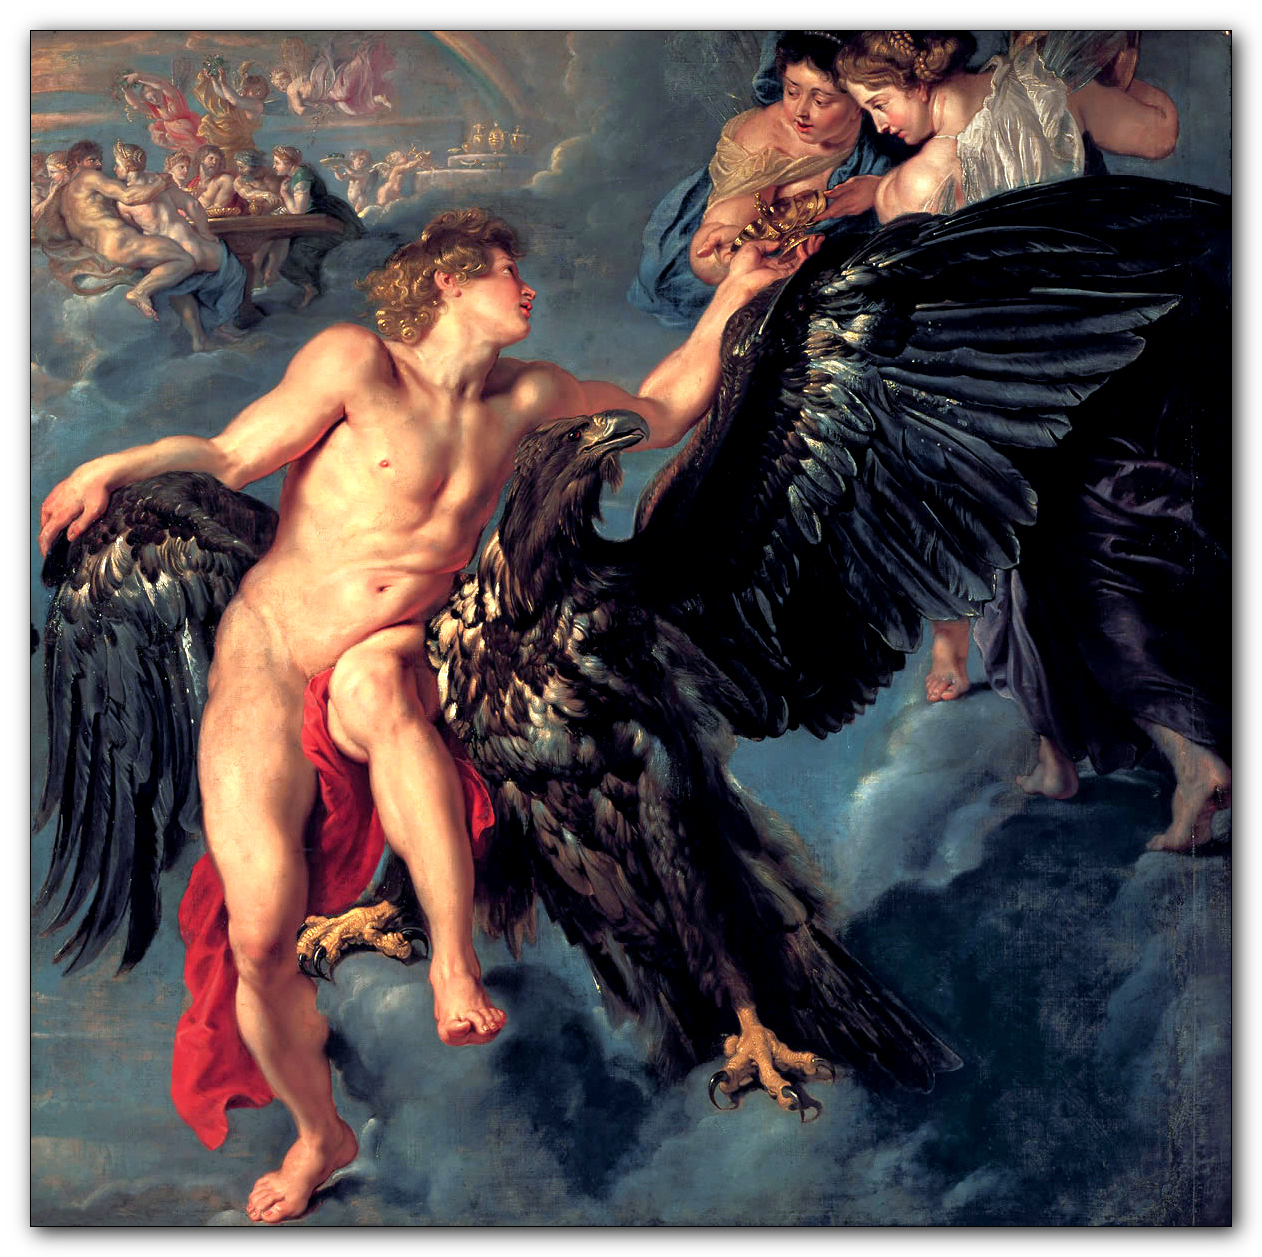 Ganymede_receives_the_bowl_from_Hebe,_by_Peter_Paul_Rubens.jpg